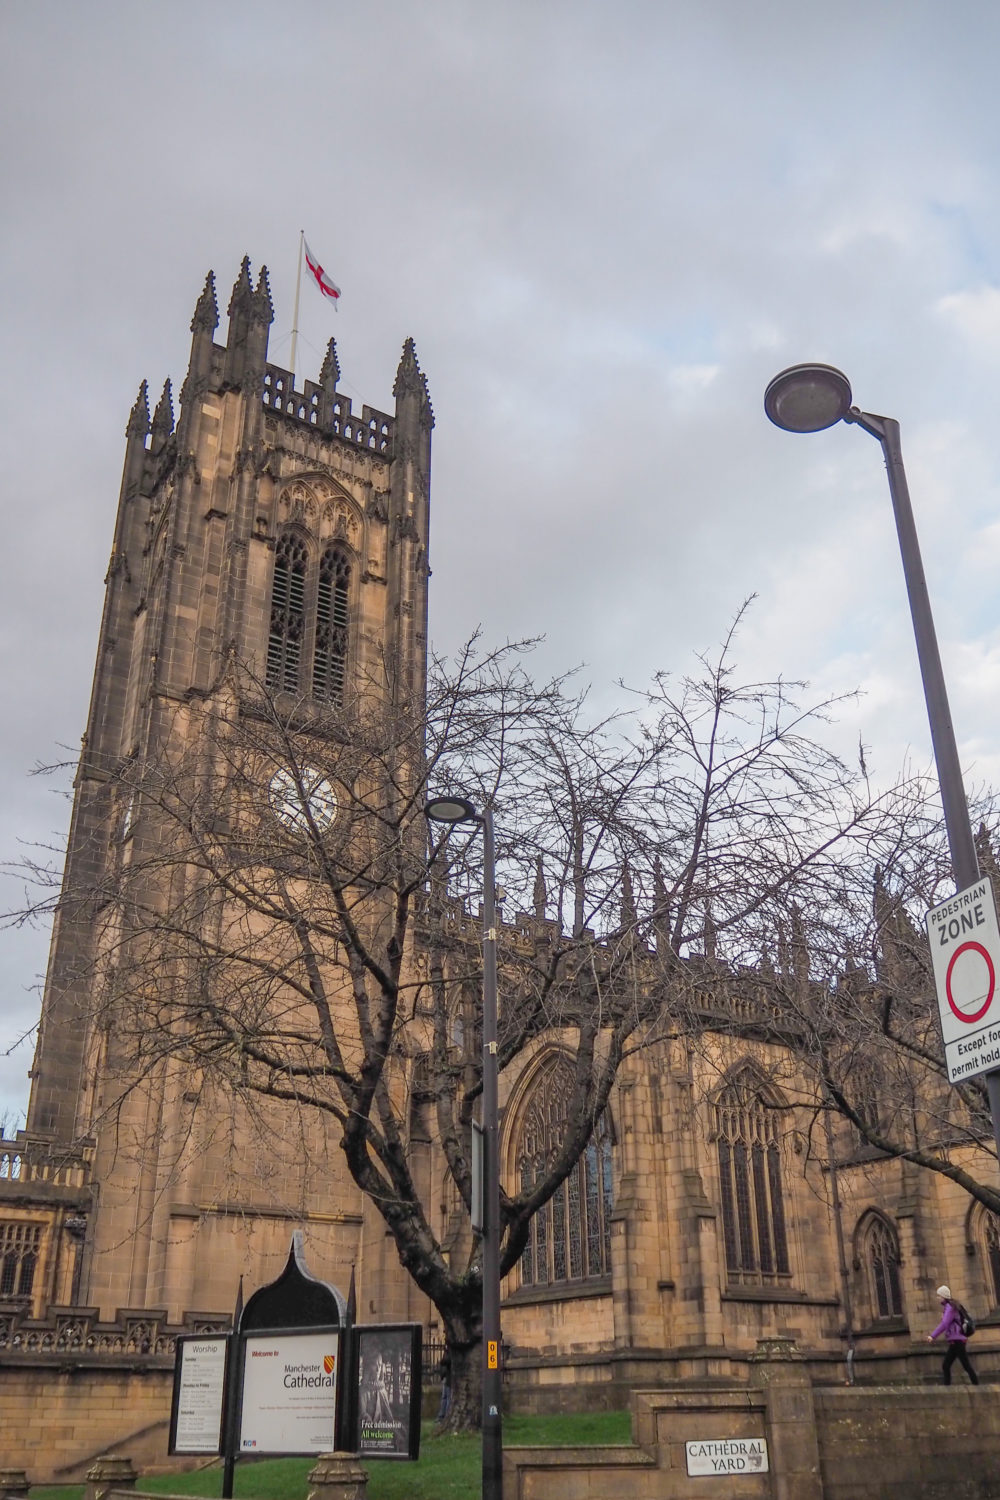 day trip to Manchester to visit cathedral travelling with National express